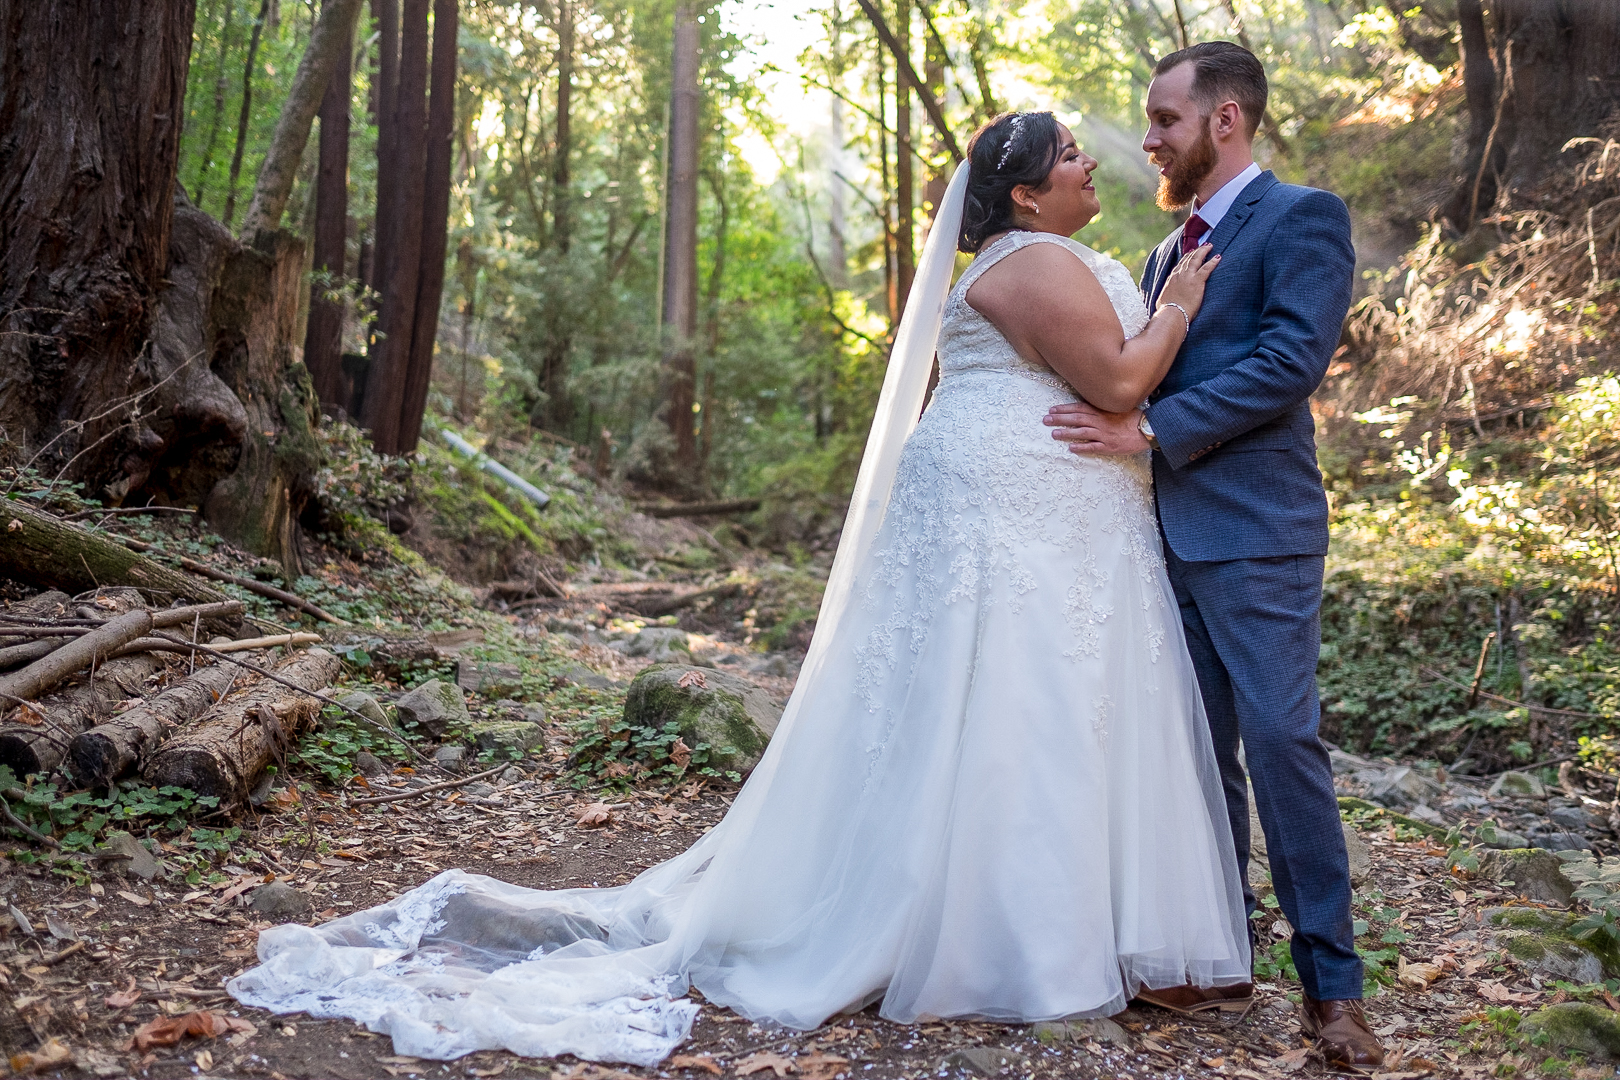 This wedding at Saratoga Springs will capture your heart especially if you love redwoods as much as this lovely couple!